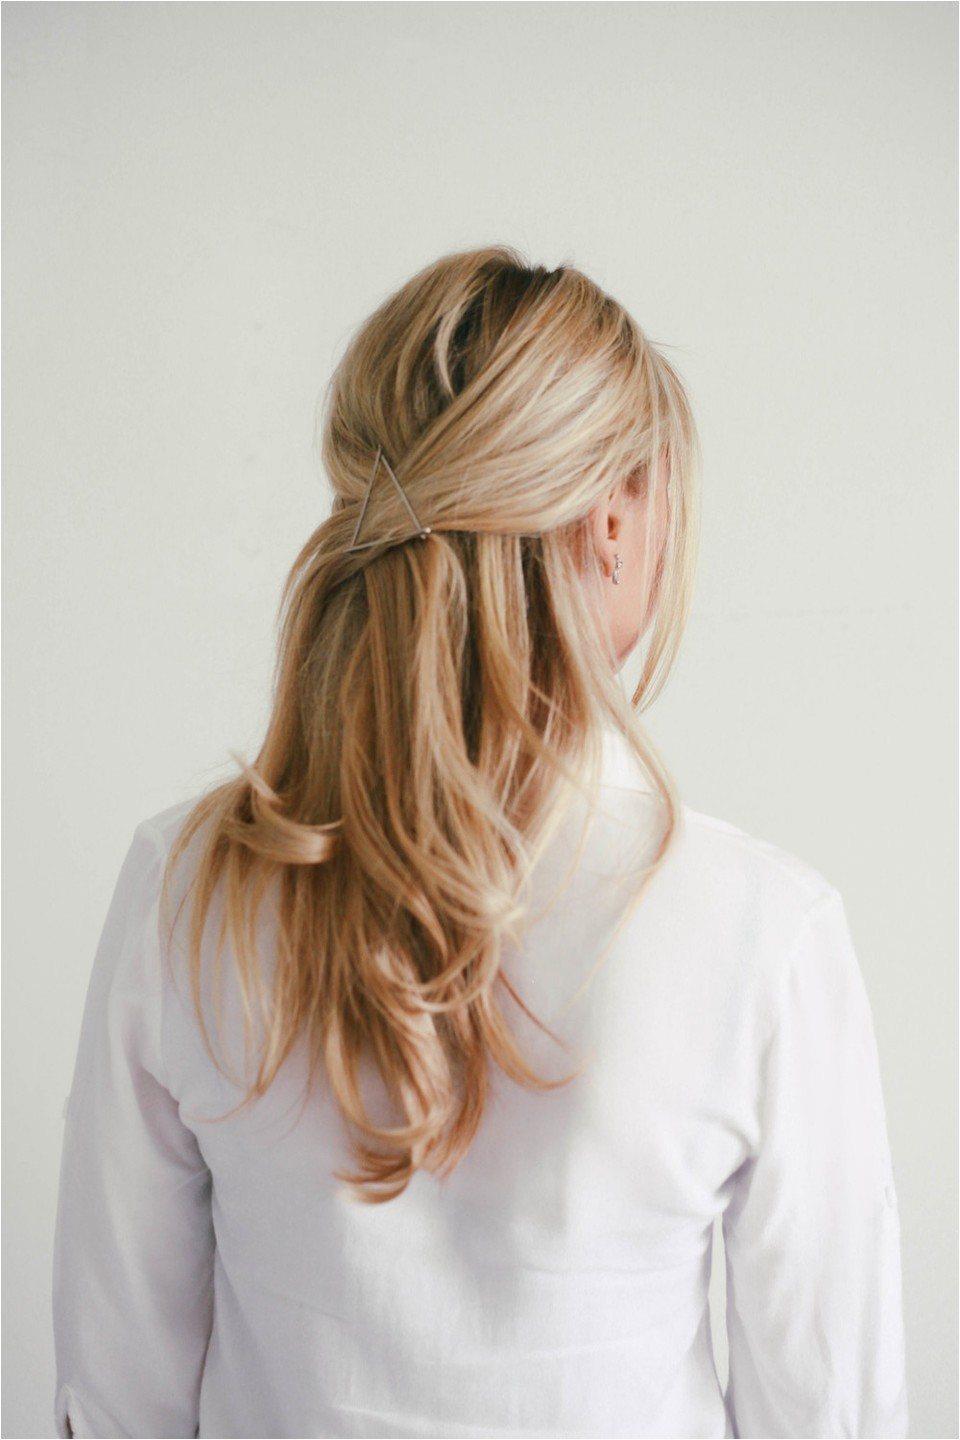 Easy to Do Hairstyles That Keep Your Hair Out of Your Face